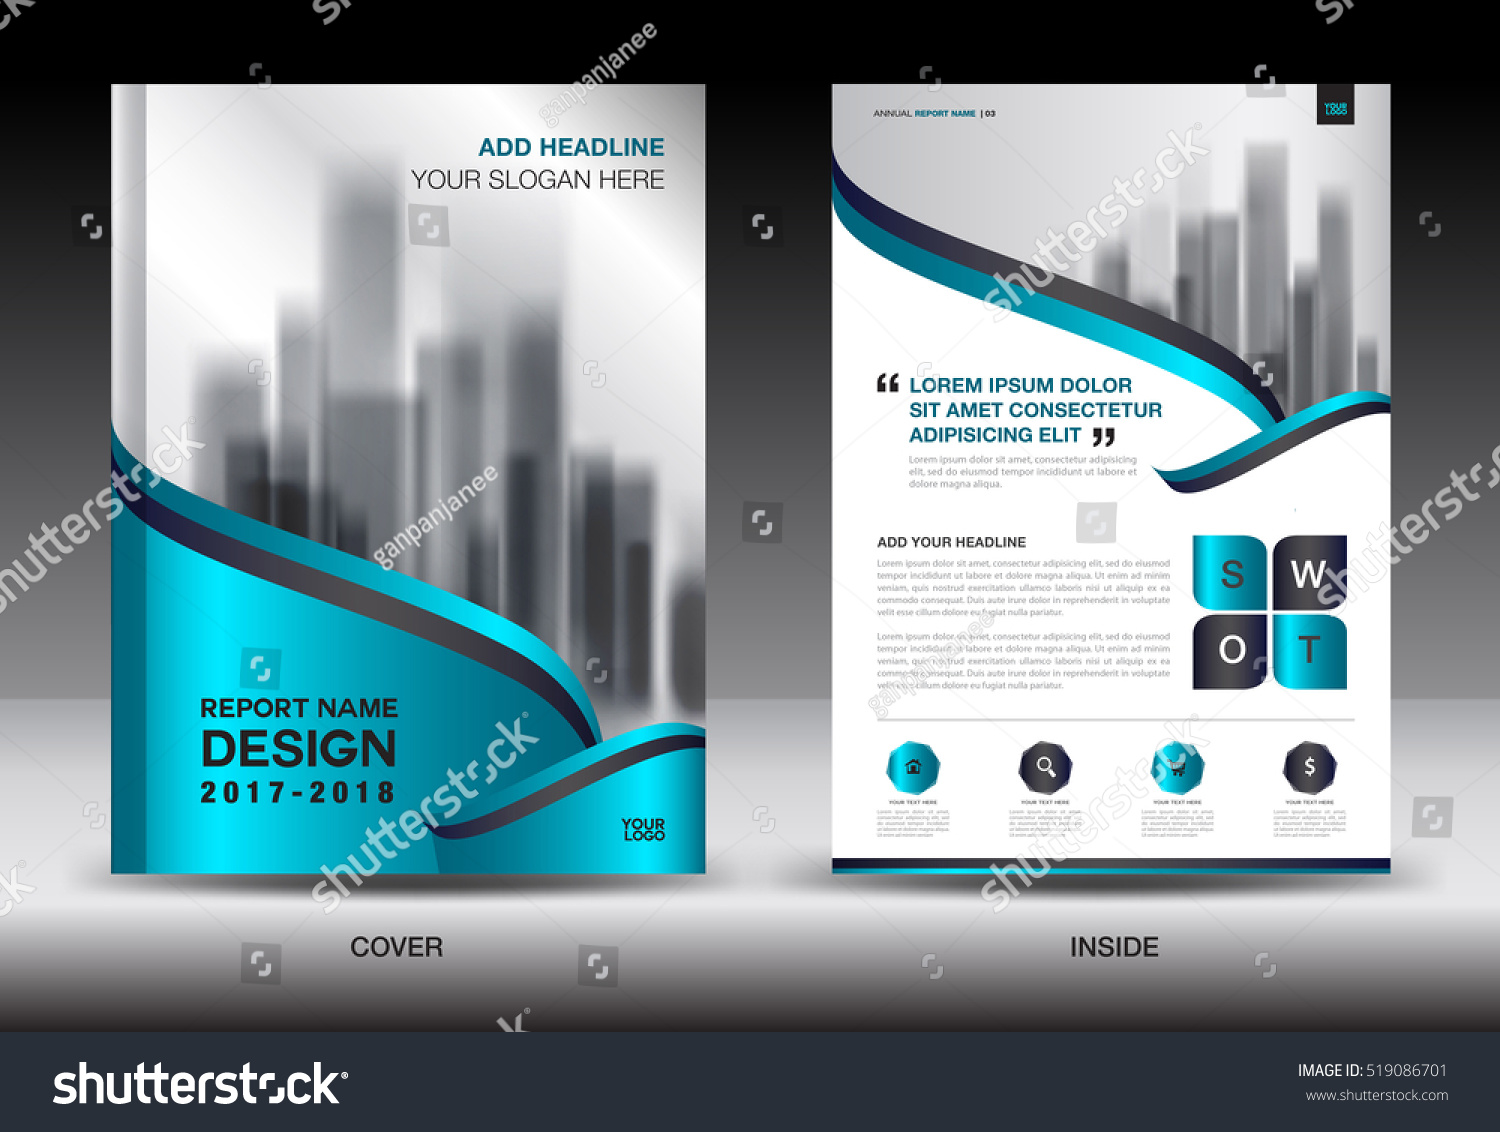 annual report brochure flyer template blue cover design business annual report brochure flyer template blue cover design business flyer advertisement book